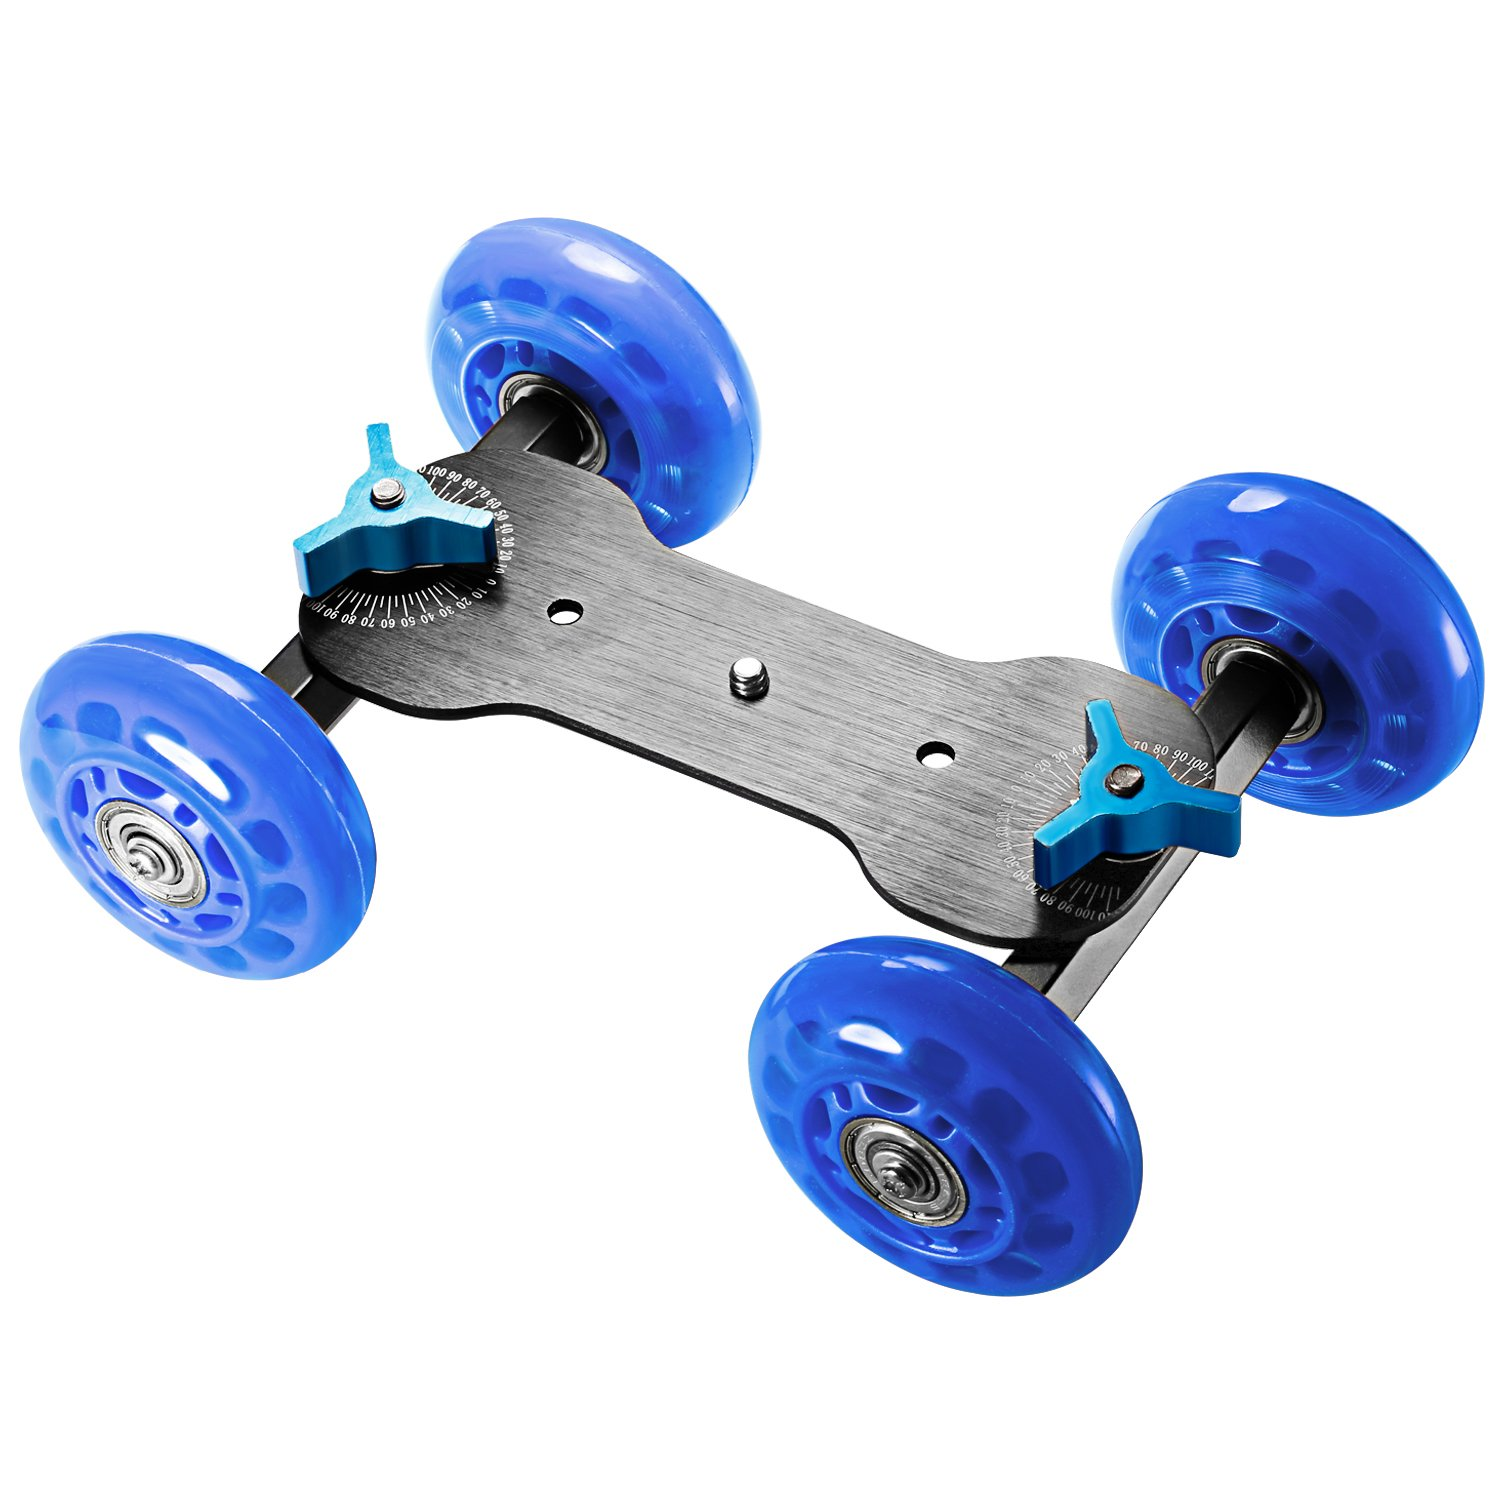 Neewer Professional Tabletop Mobile Rolling Slider Dolly Car Skater Video Track Rail for Digital SLR Cameras & Video Camcorders/LED Lights/flash light (Blue)